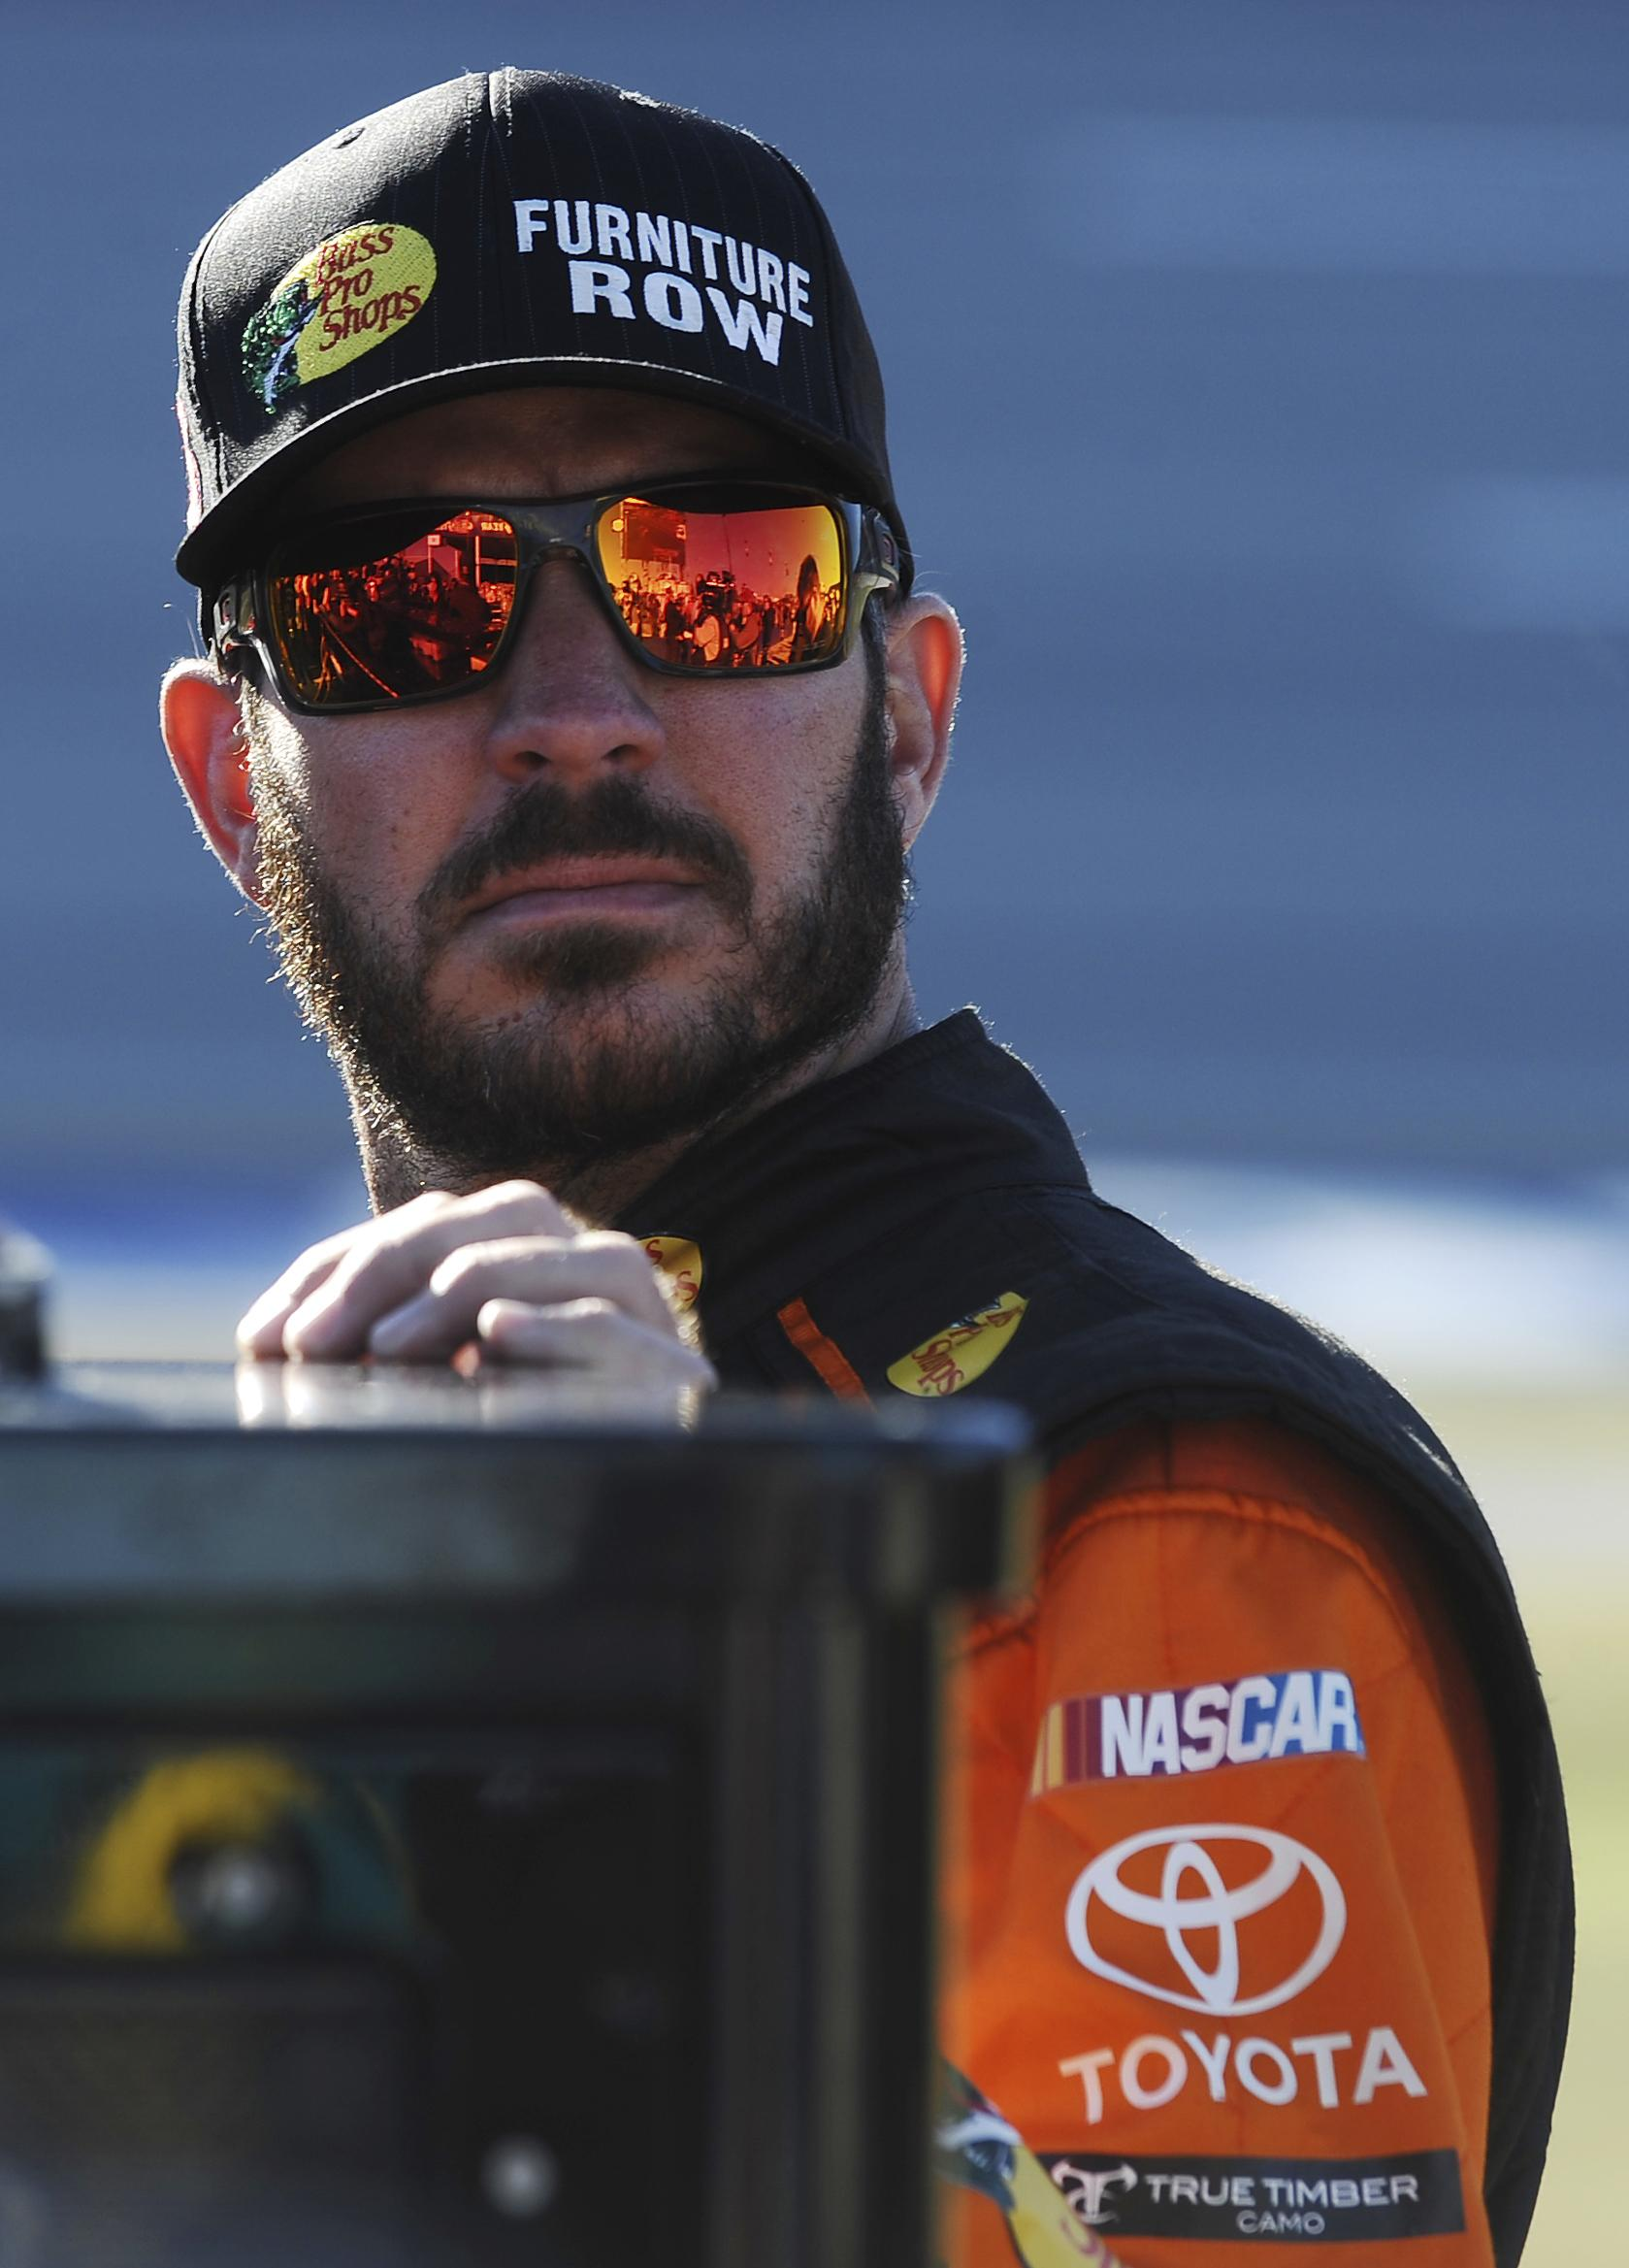 Nascar Pole Position >> Auto racing: Martin Truex Jr. bolts to front in qualifying ...